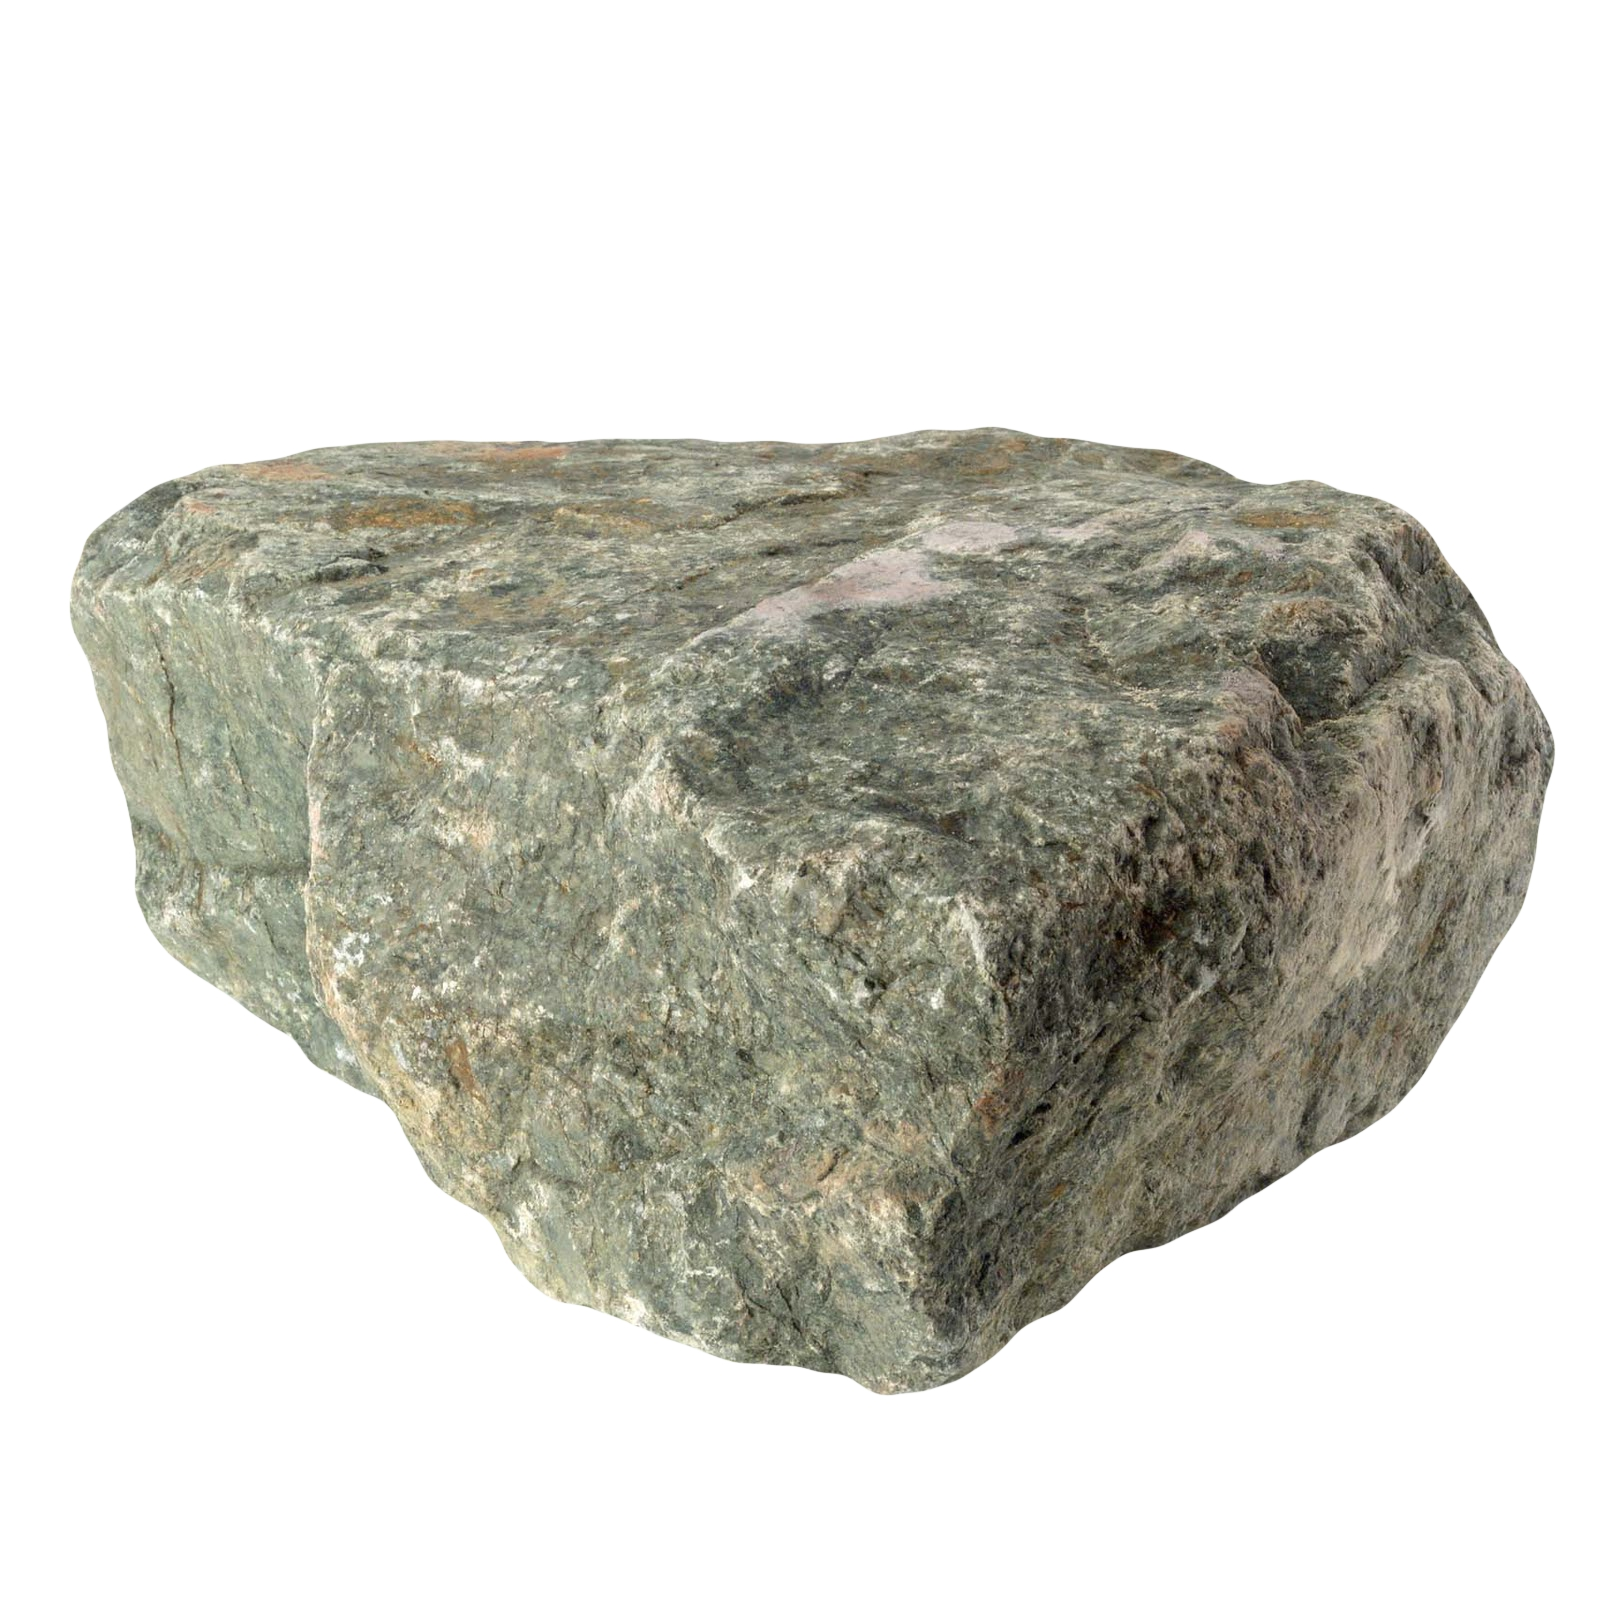 Download Free High quality Stone Png Transparent Images